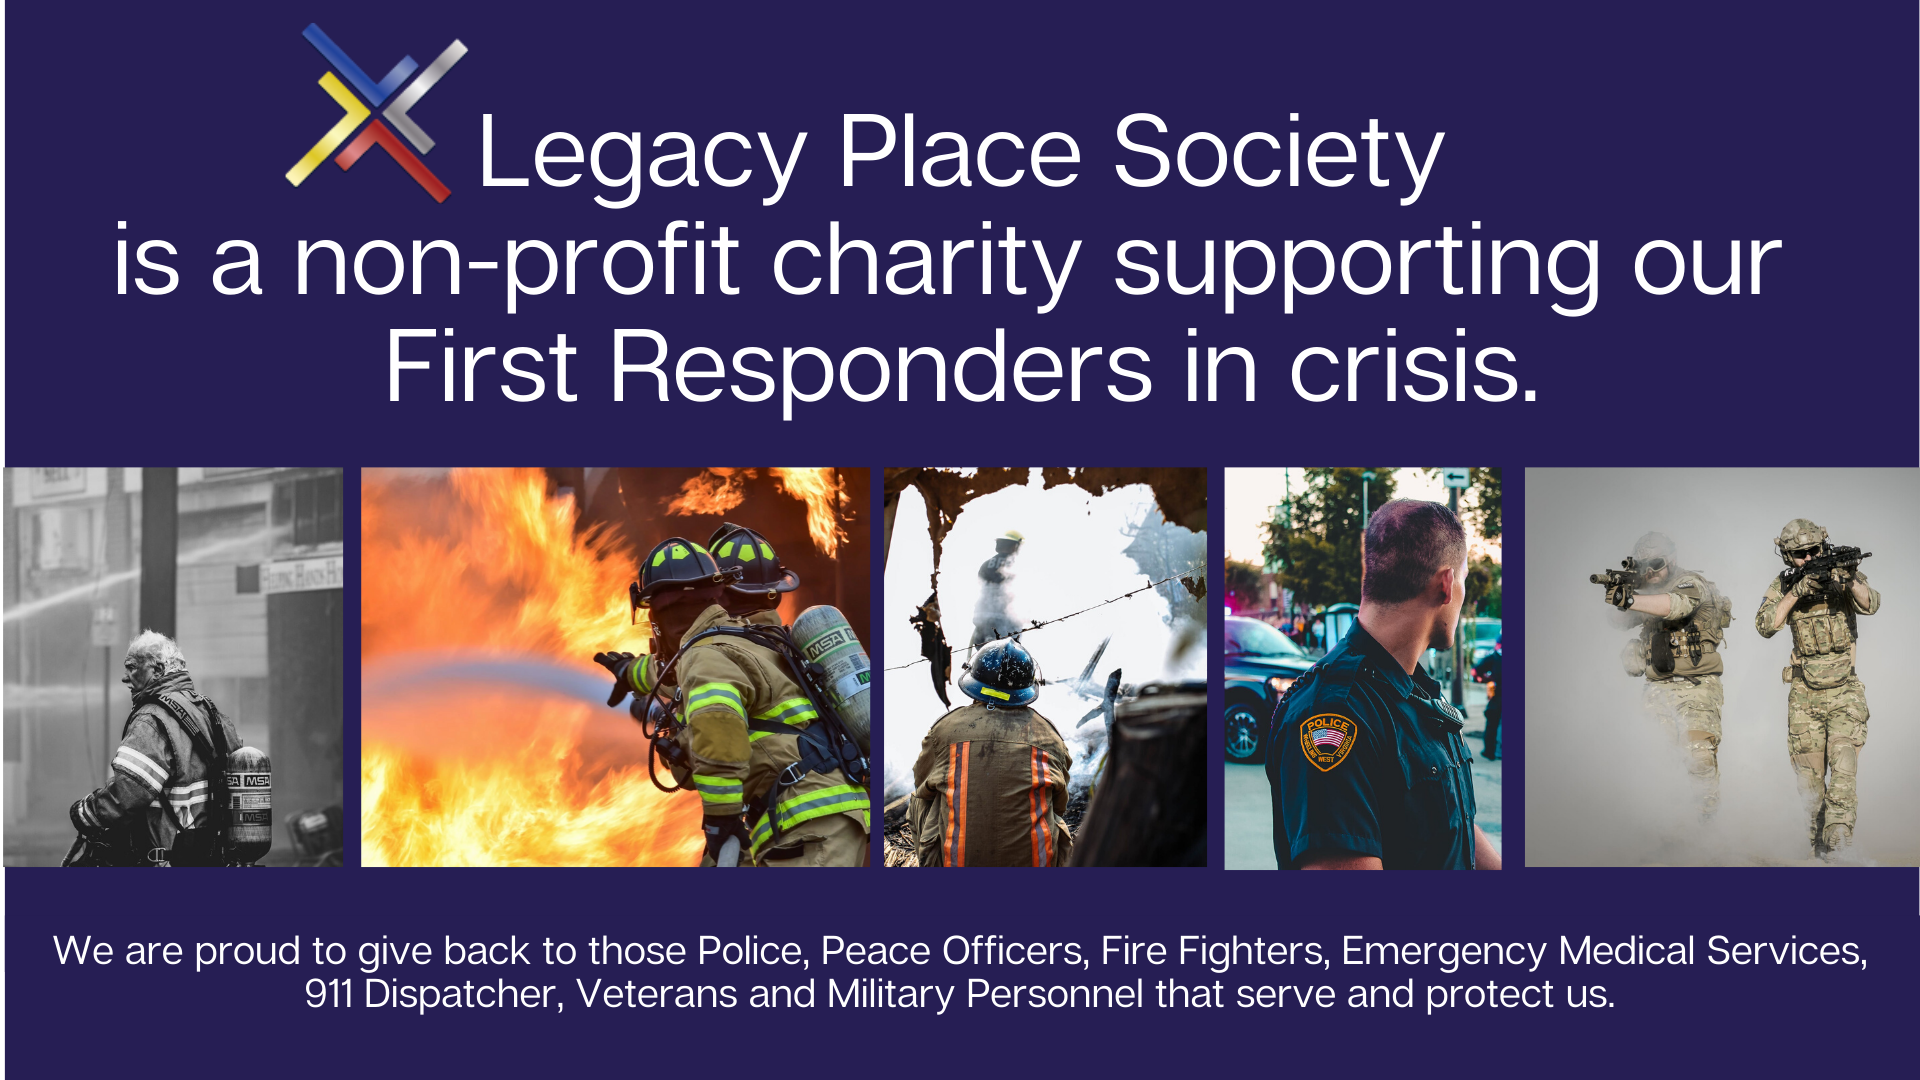 Legacy Place Society